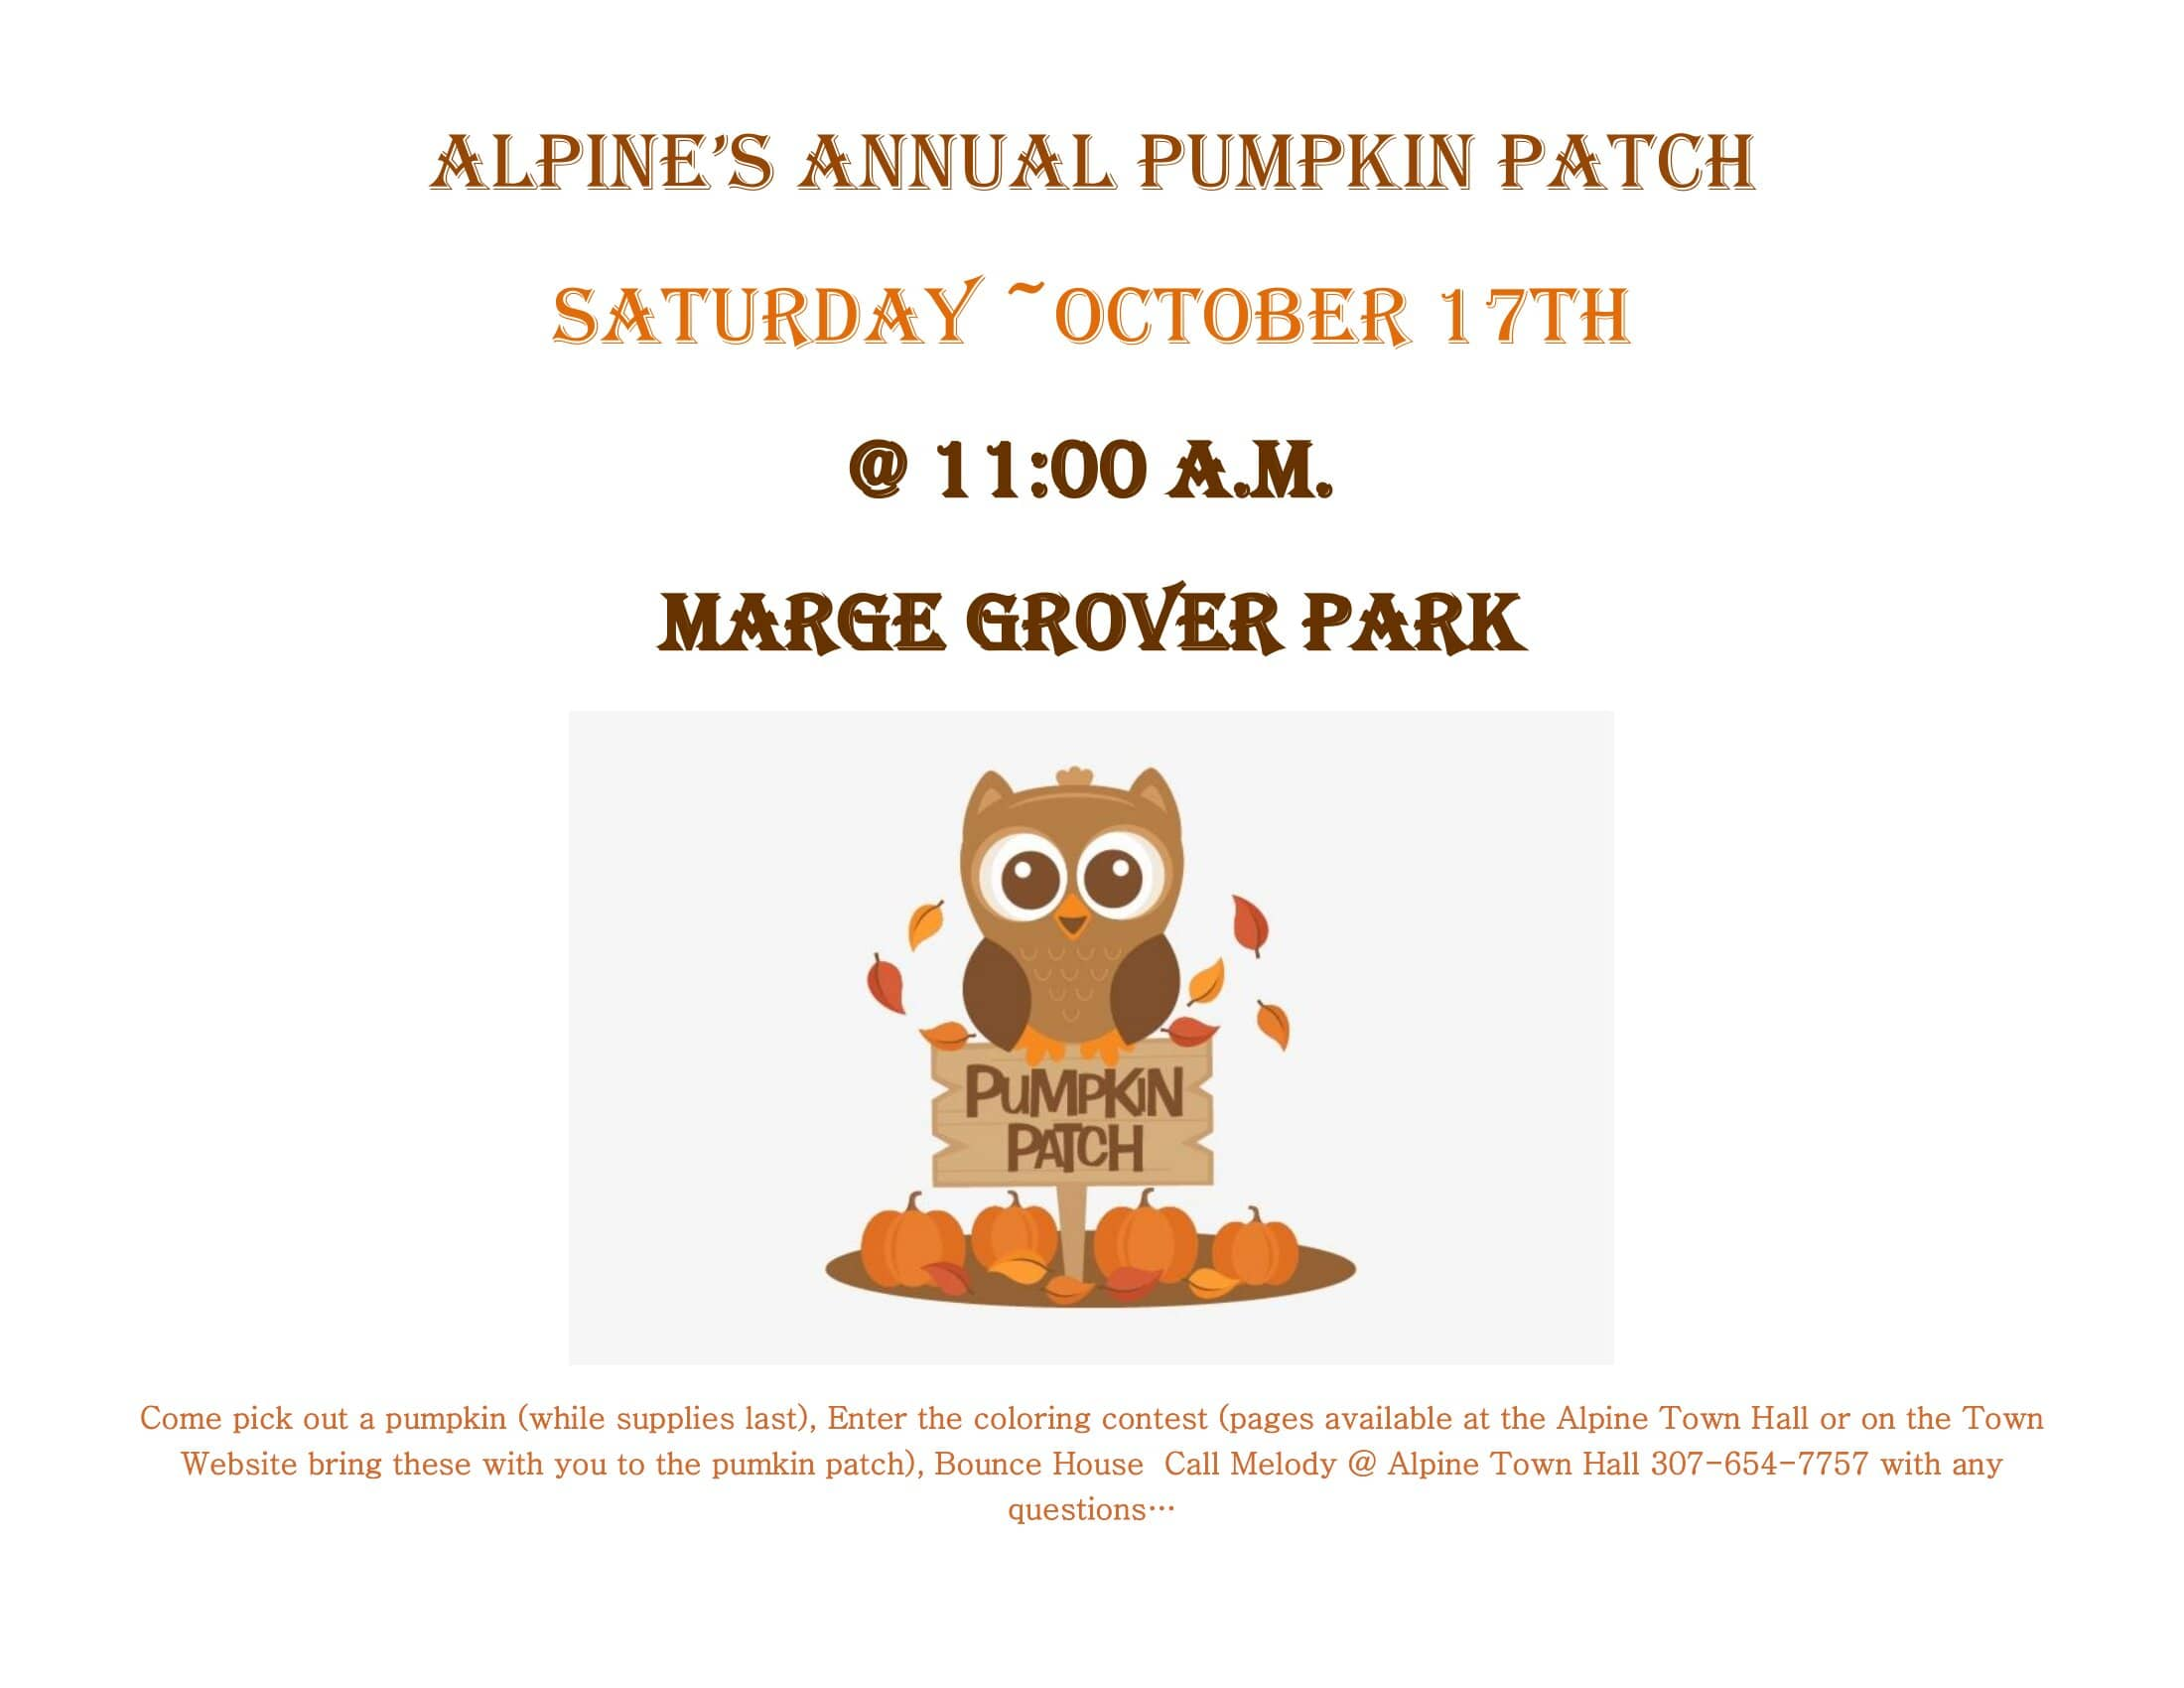 Alpine's Pumpkin Patch @ Alpine's Pumpkin Patch